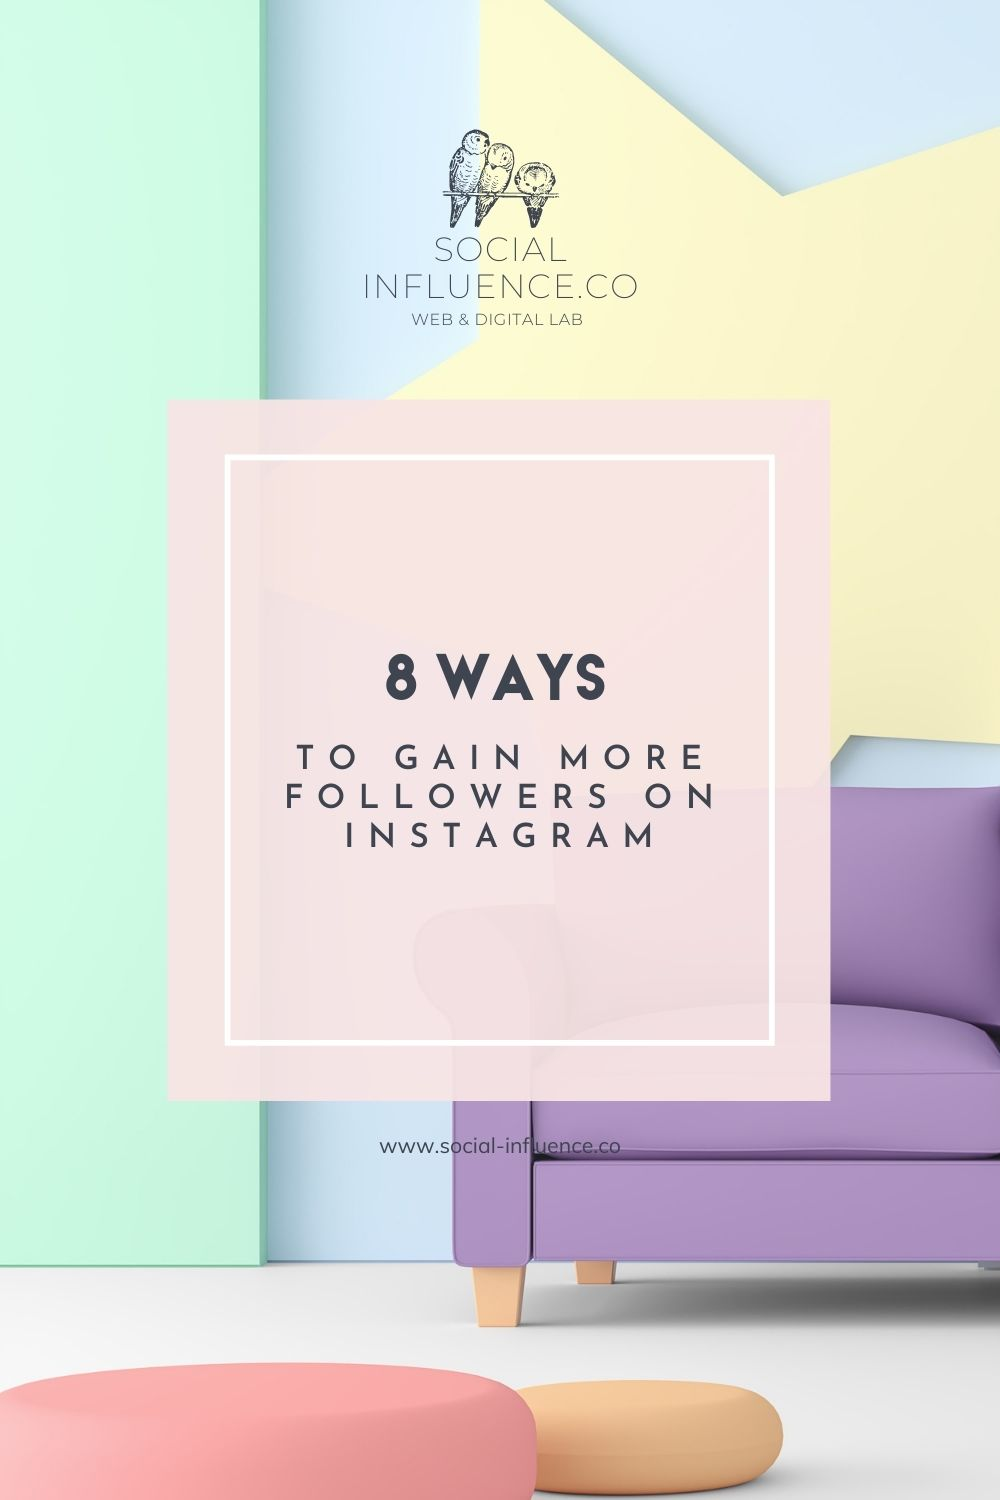 8 Ways to Gain More Followers on Instagram on a pastel background